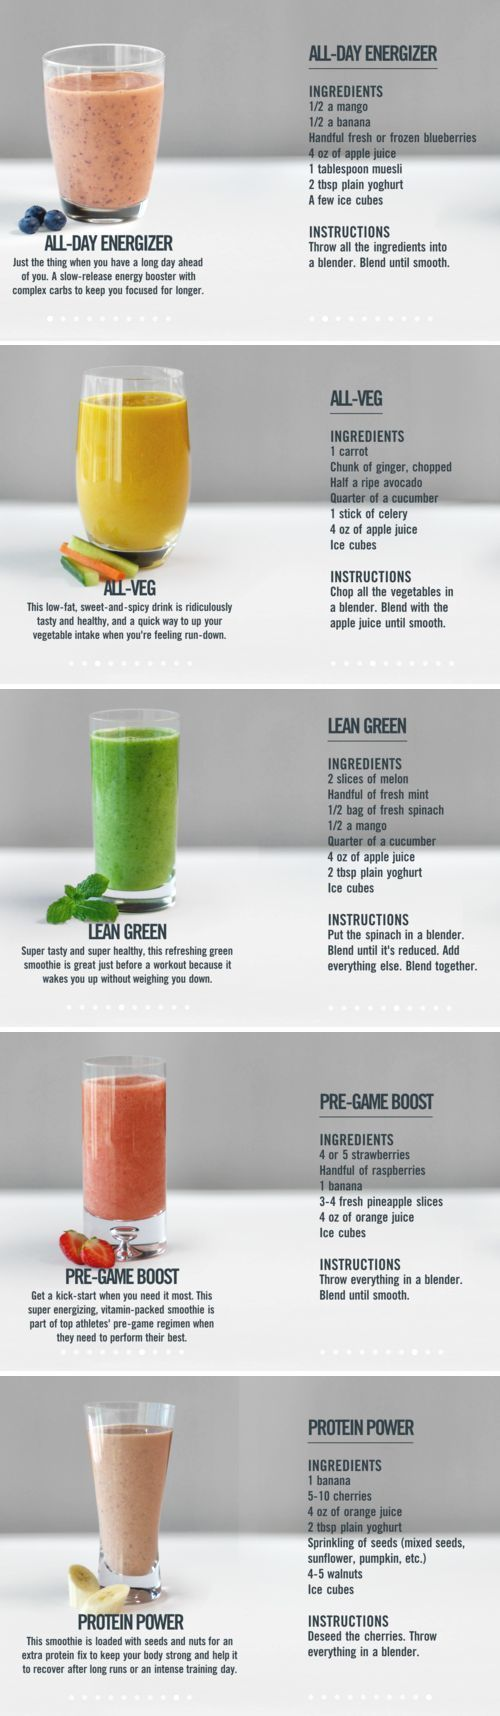 Sometimes all it takes is a little kick start in the morning to give your day a fresh start. With these delicious smoothie recipes, you'll have enough energy to be running around from work to dress fittings to meeting your vendors. I absolutely love a pre game boost shake before I go and play a lax game!